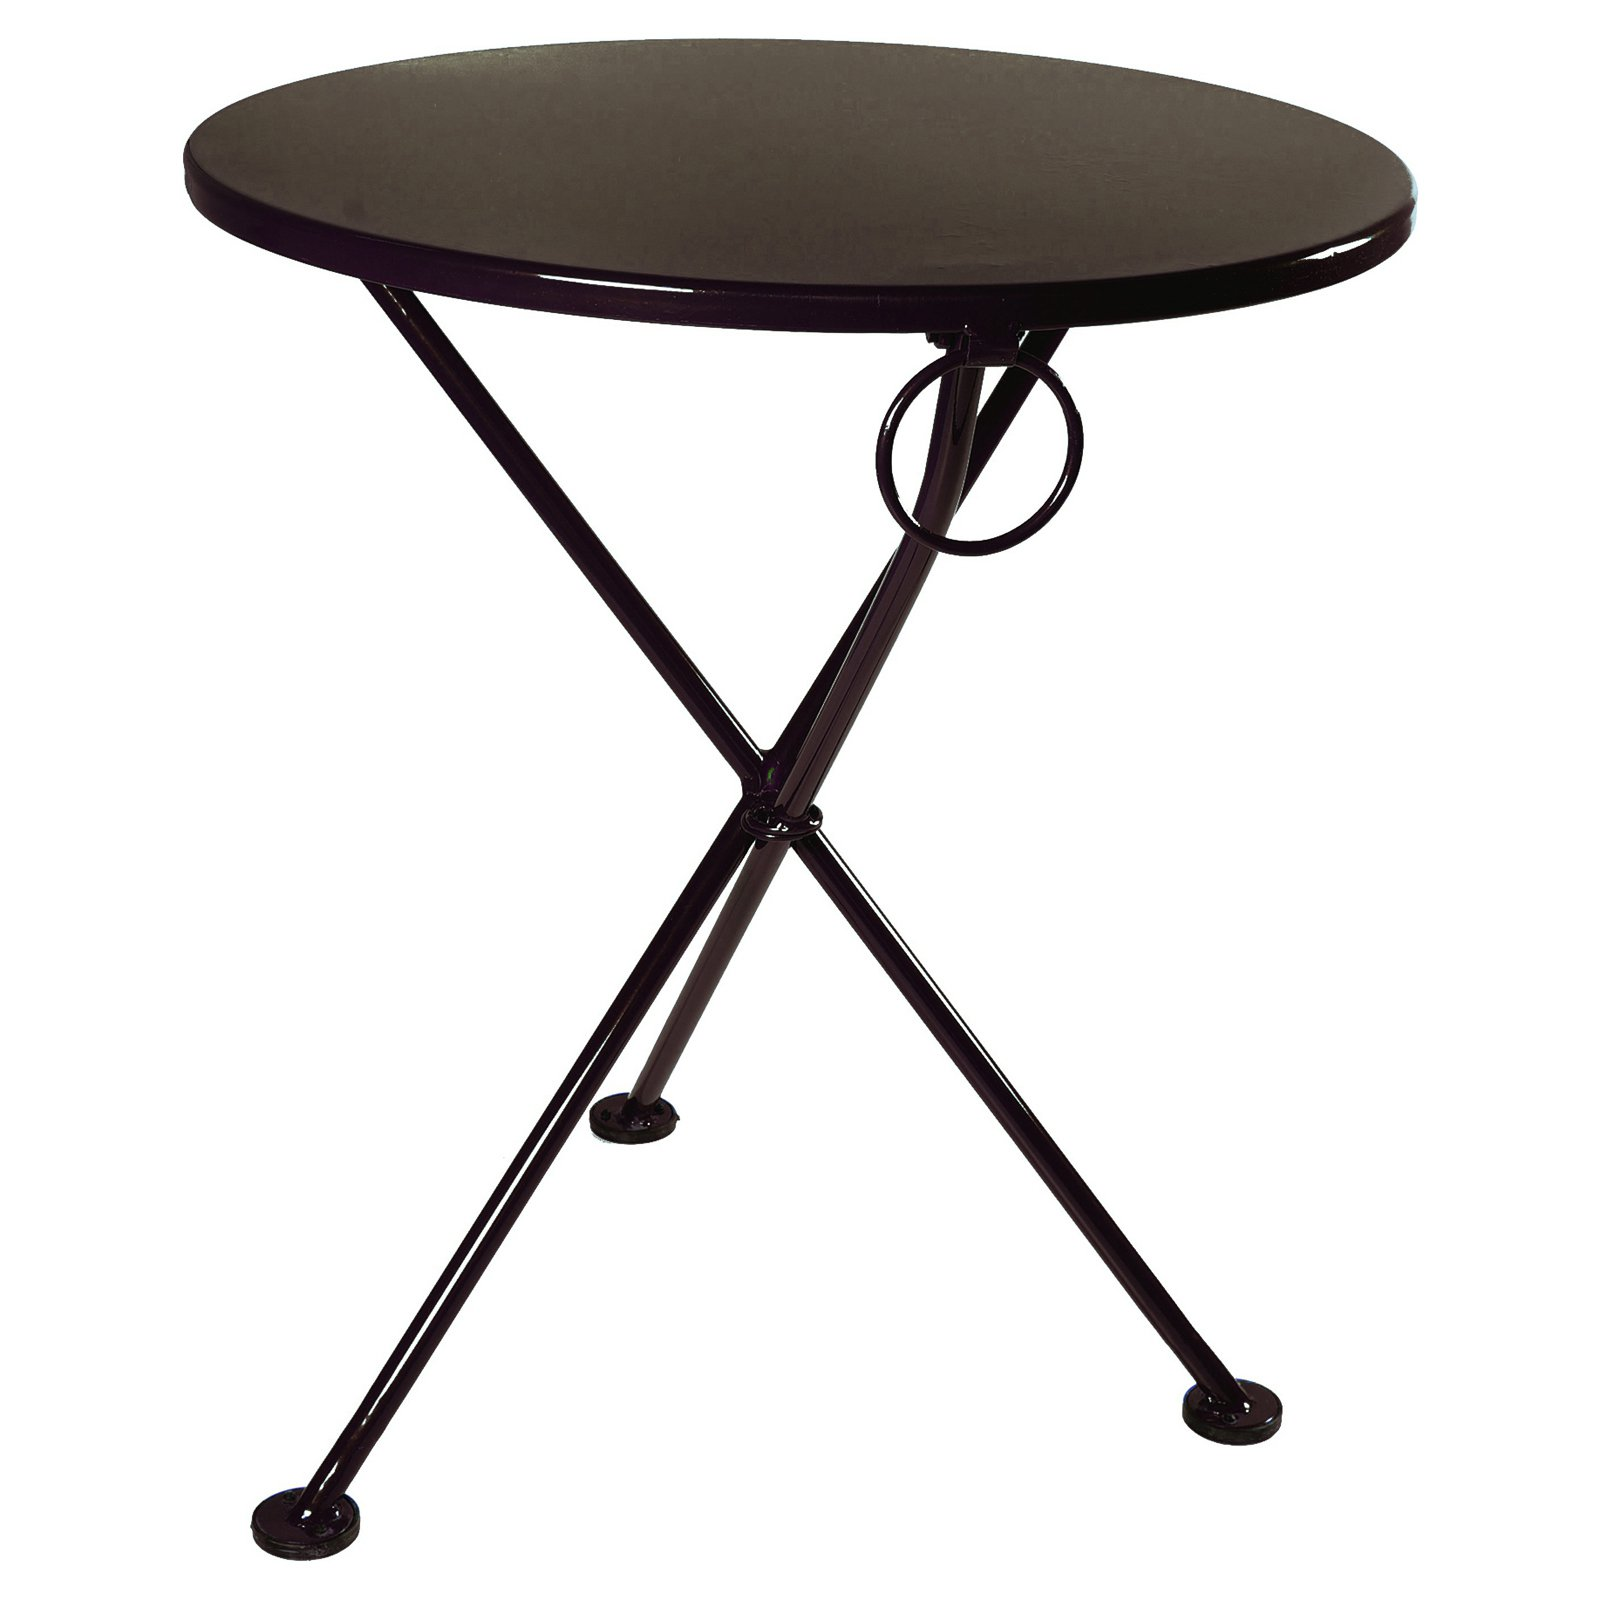 72 inch round outdoor dining table luxury round formal for Dining room tables 72 inches